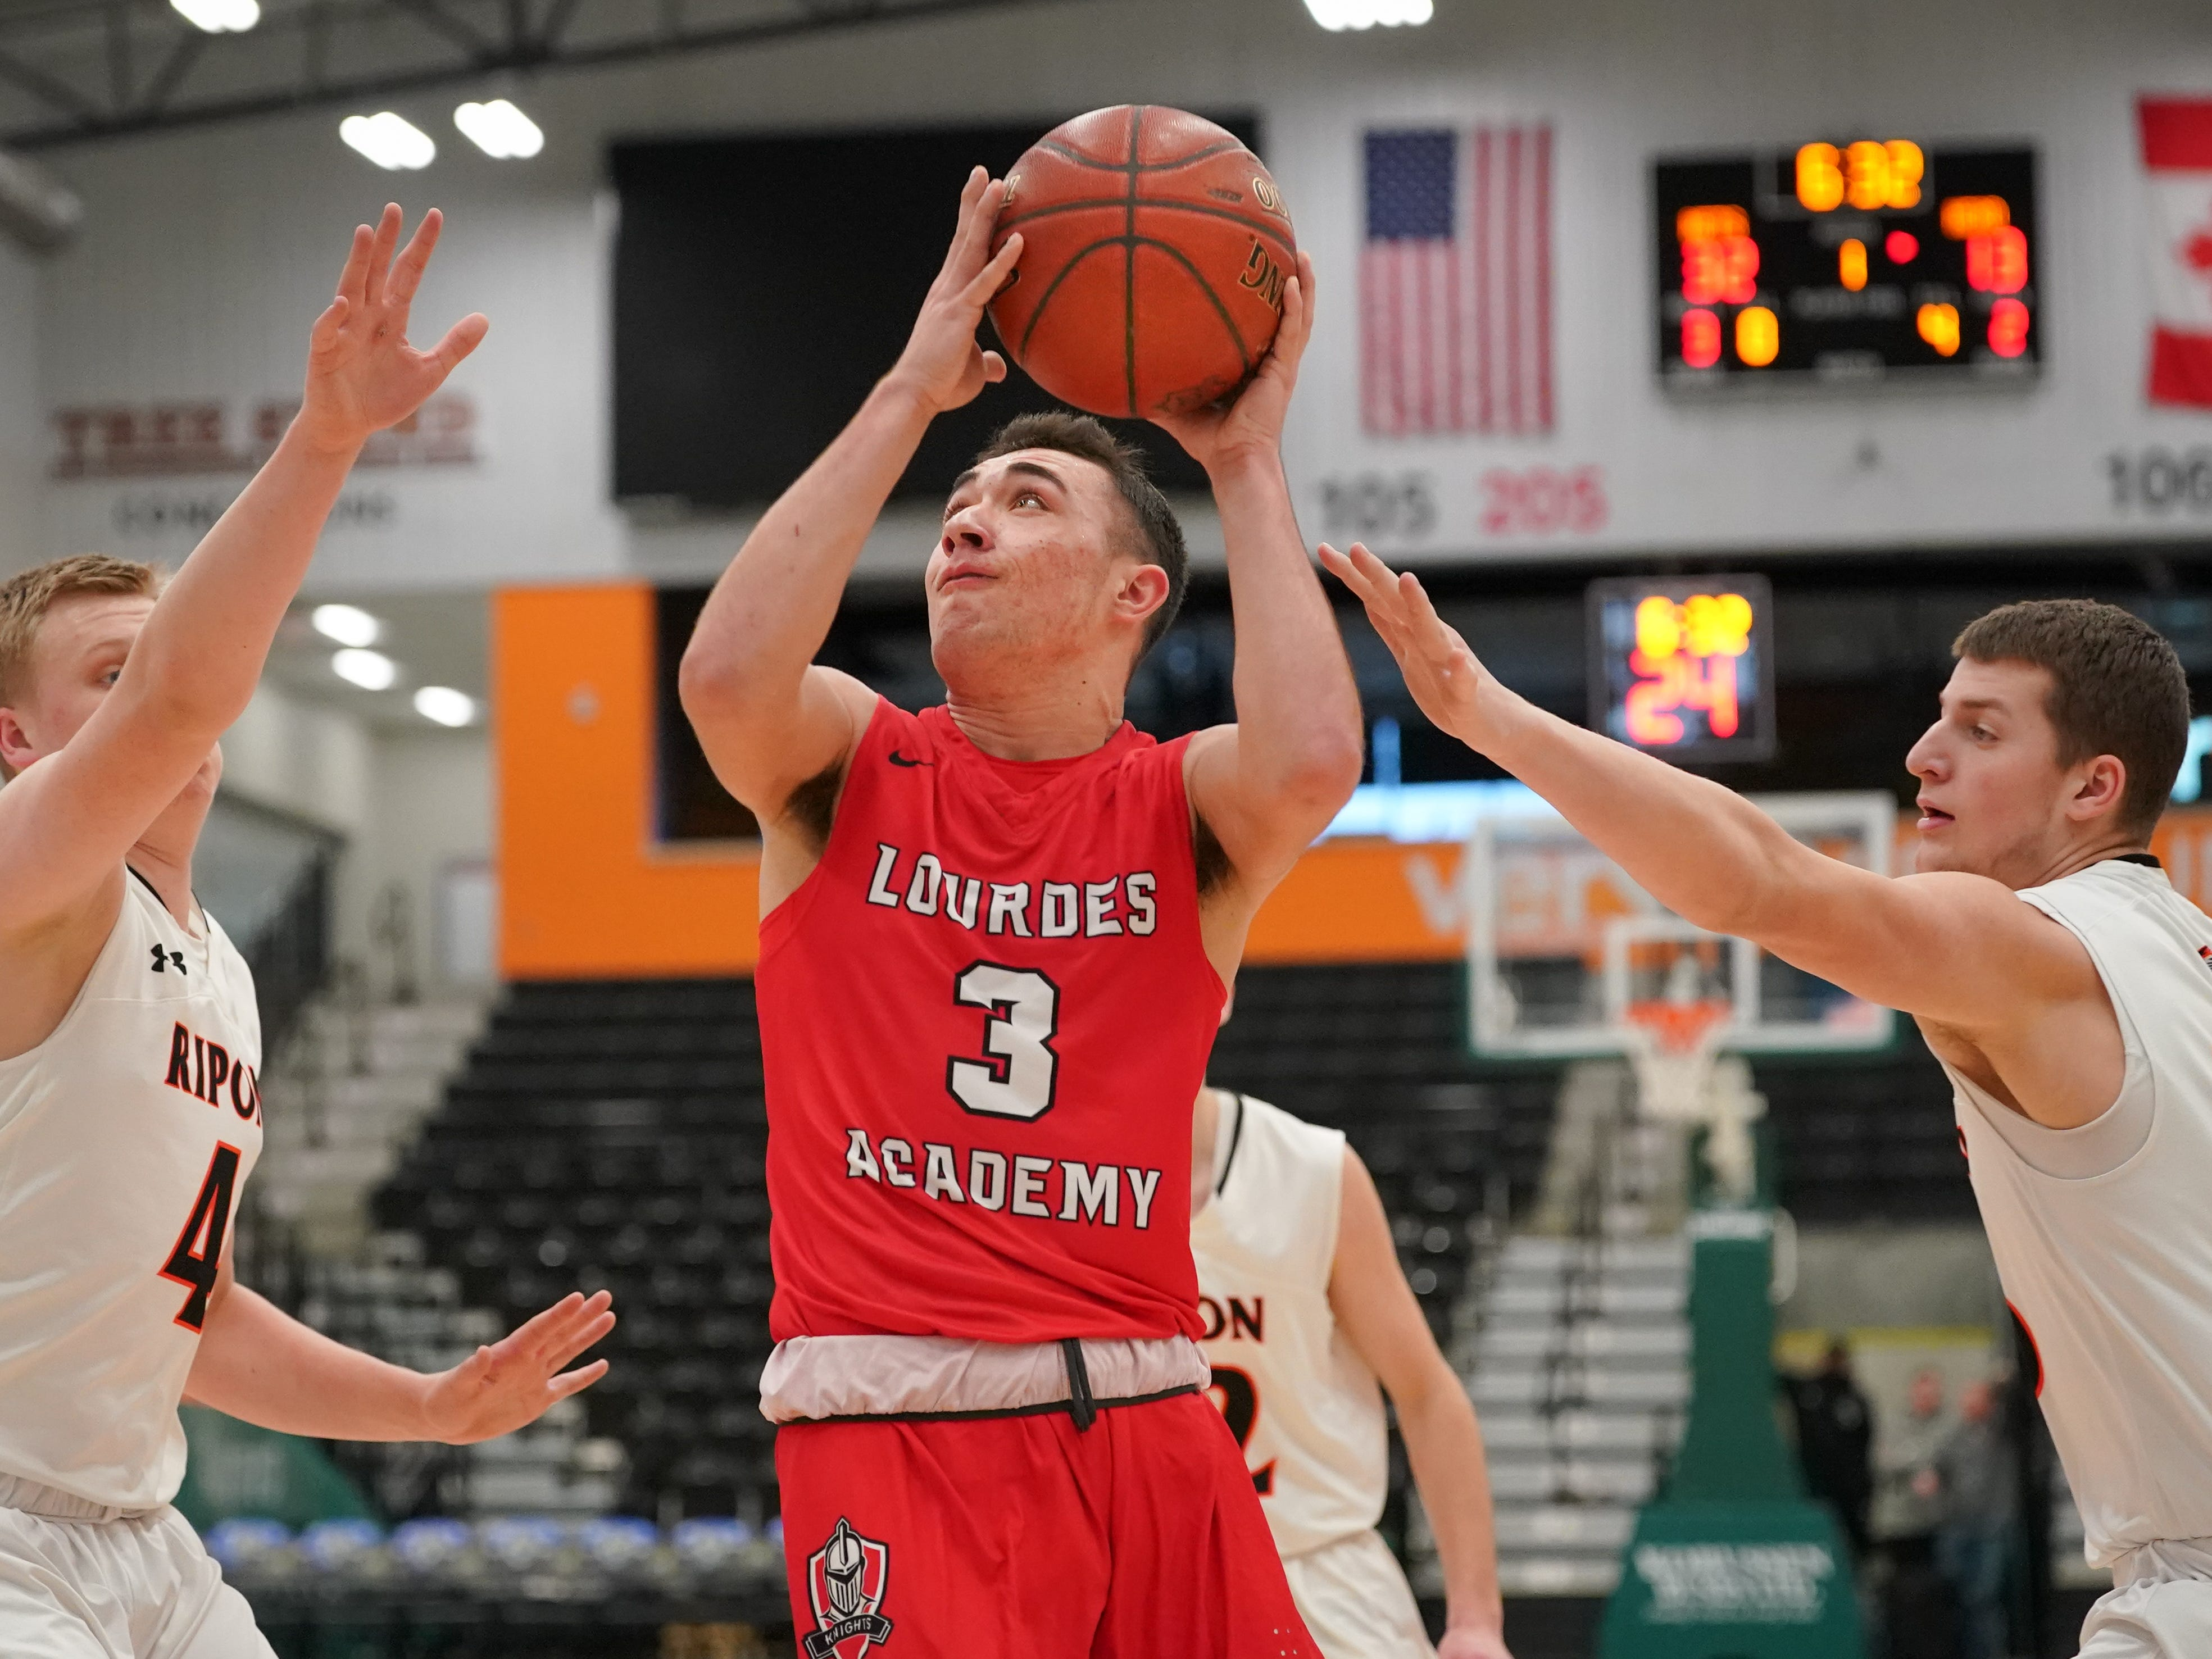 Ben Huizenga (3) of Lourdes goes in for a shot. The Lourdes Knights and Ripon Tigers met in a nonconference basketball game Saturday afternoon, December 29, 2018 at the Menomonie Nation Arena in Oshkosh.